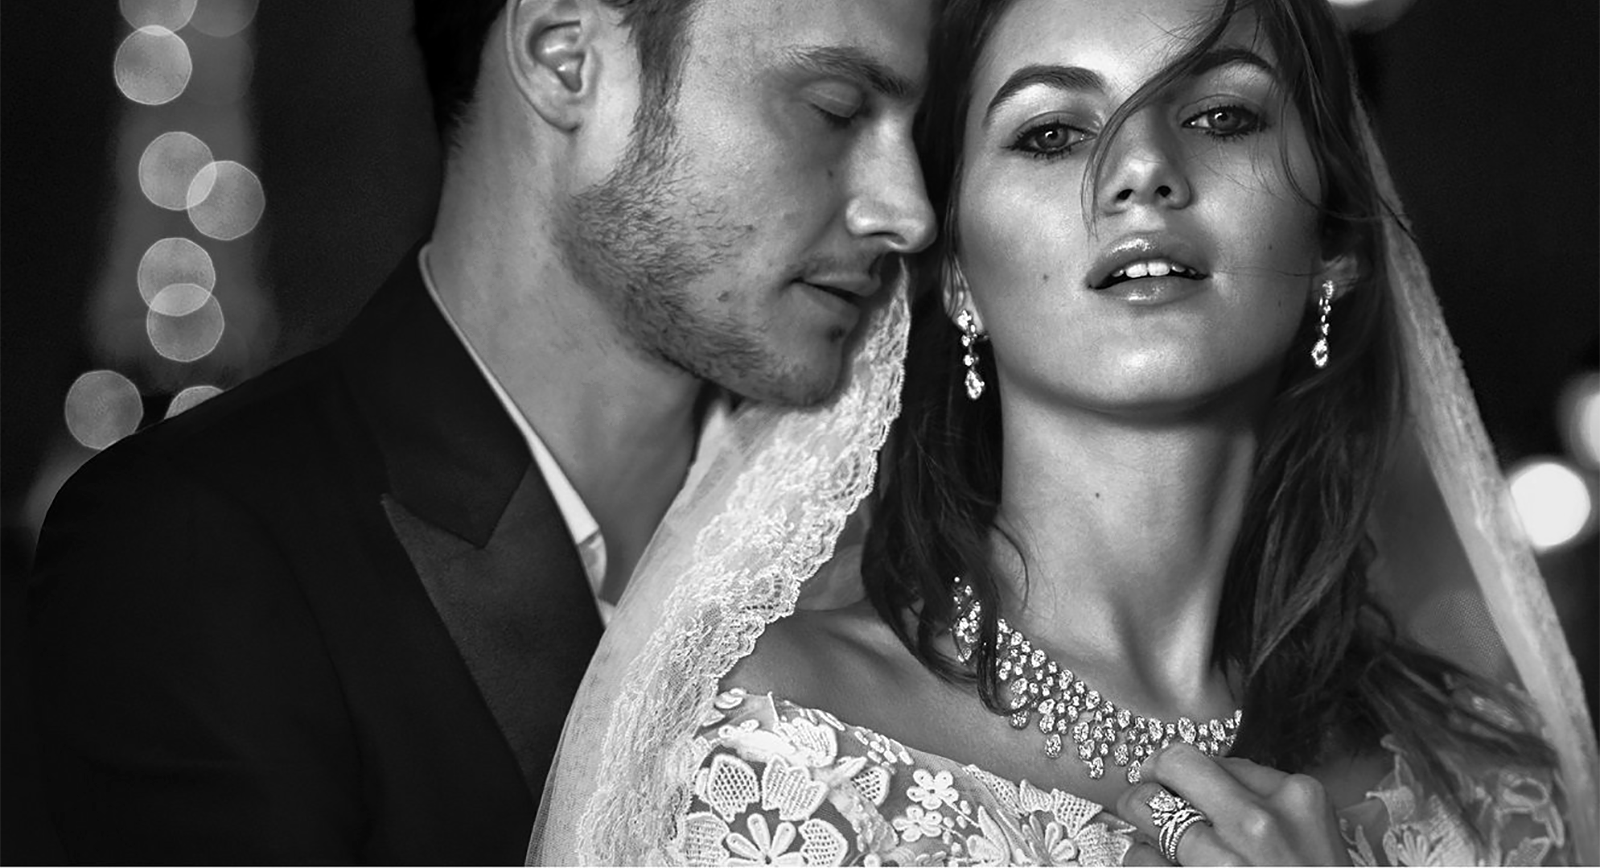 Two Eponymous Jewellery Houses Launched Bridal Films for the Wedding Season